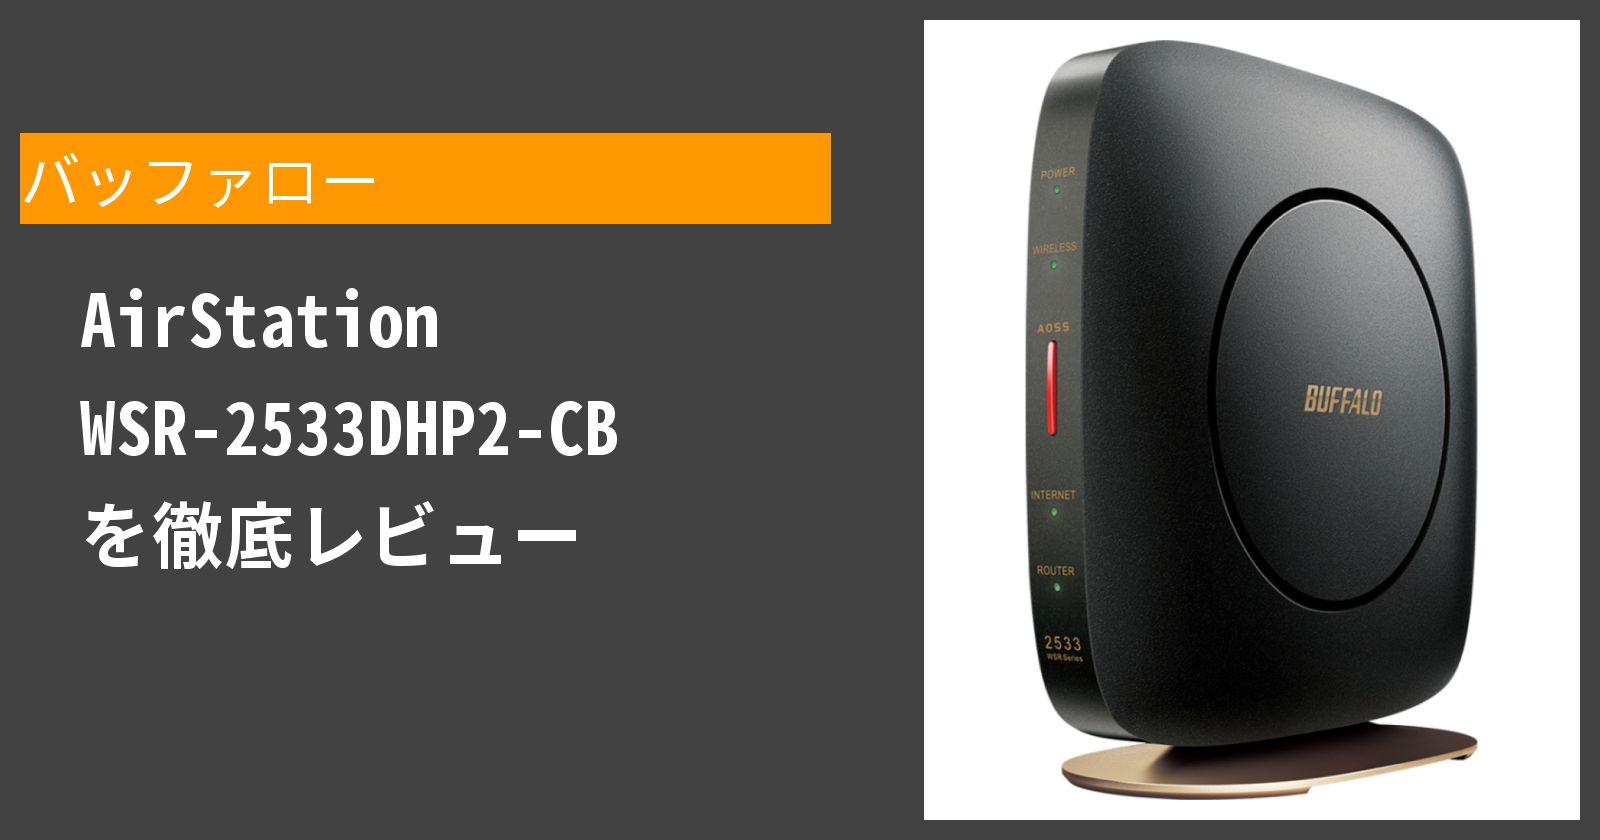 AirStation WSR-2533DHP2-CBを徹底評価